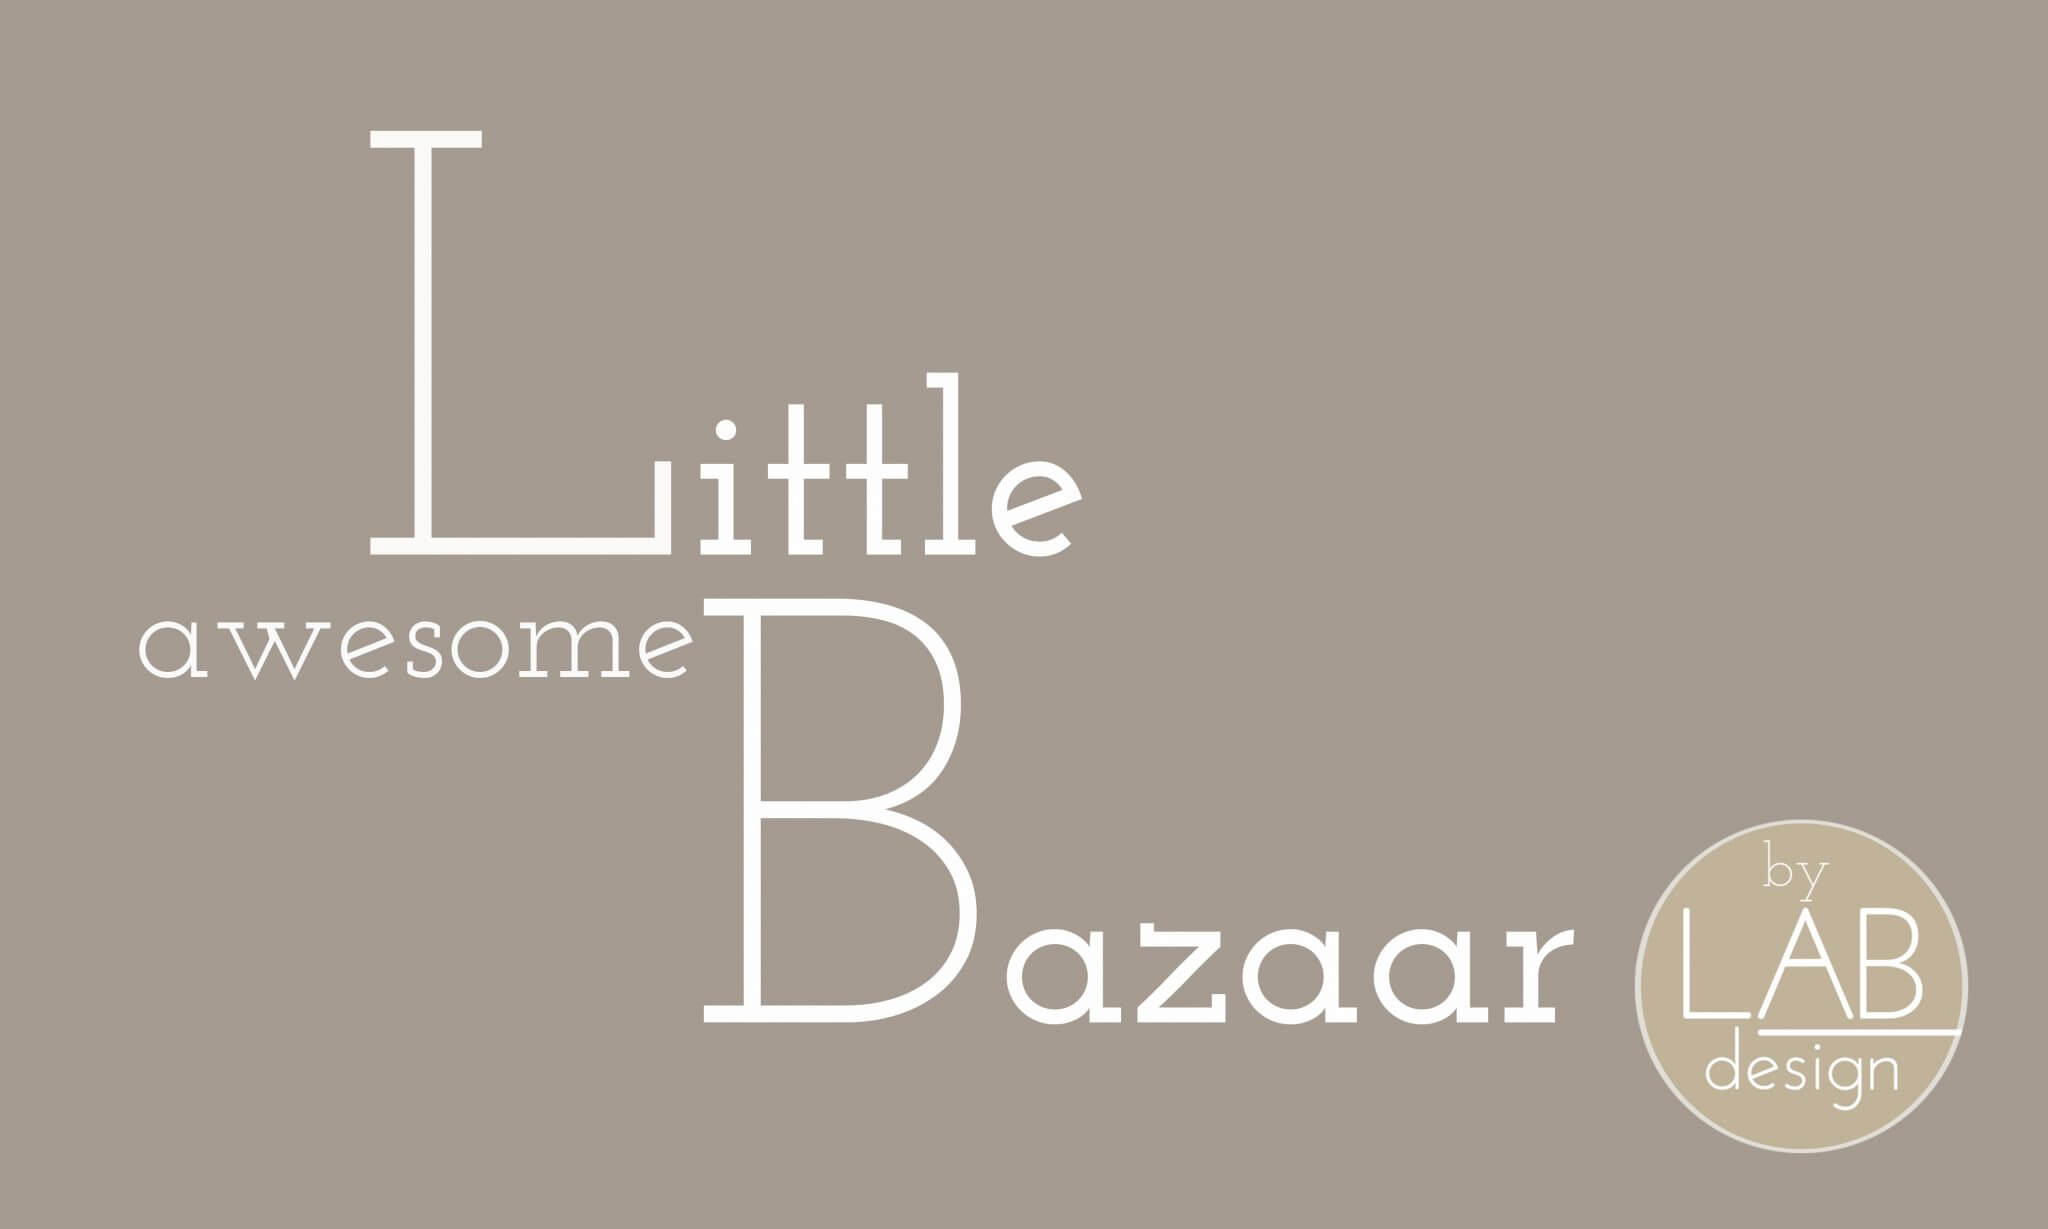 Little Awesome Bazaar